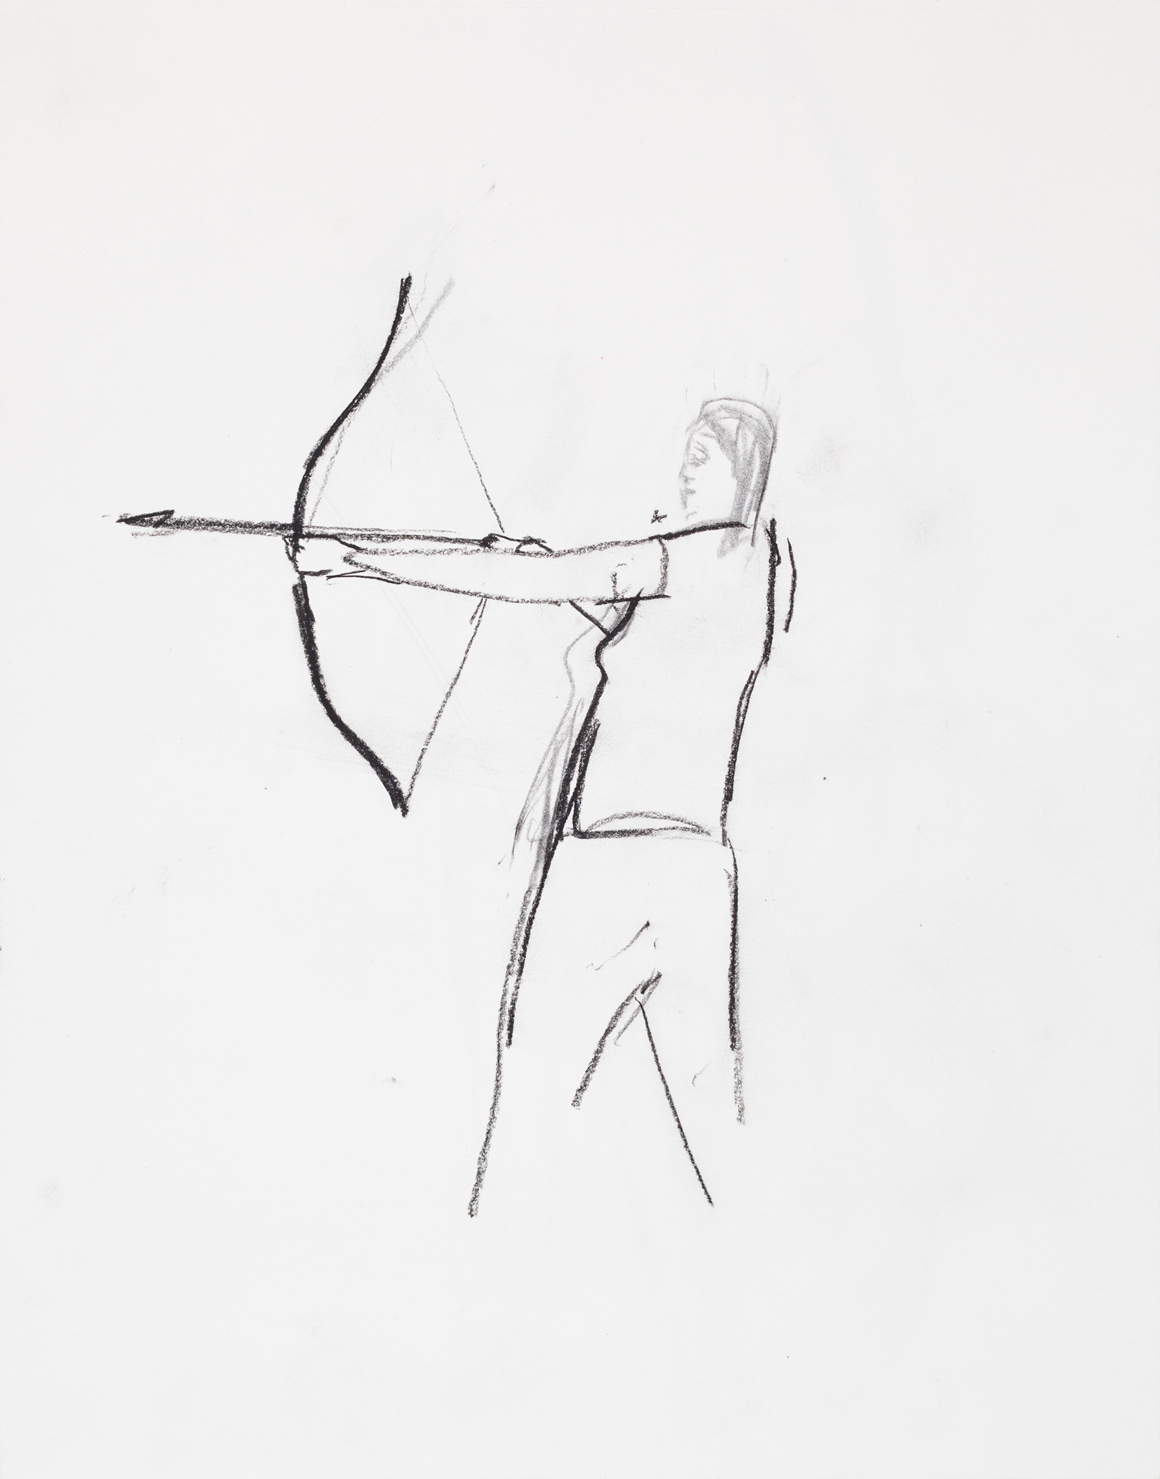 "<p><span class=""name"">William Stockman</span><br><em>Untitled (Archer 3)</em><span class='media'>charcoal on paper</span>14 x 11in<br>16 1/8i x 13 5/8in (framed)<br>2014<br><a class='inquire' href='mailto:info@gildargallery.com?subject=Artwork Inquiry WSTO0041&body=I am interested in finding out more about Untitled (Archer 3) by William Stockman'>Inquire</a></p>"